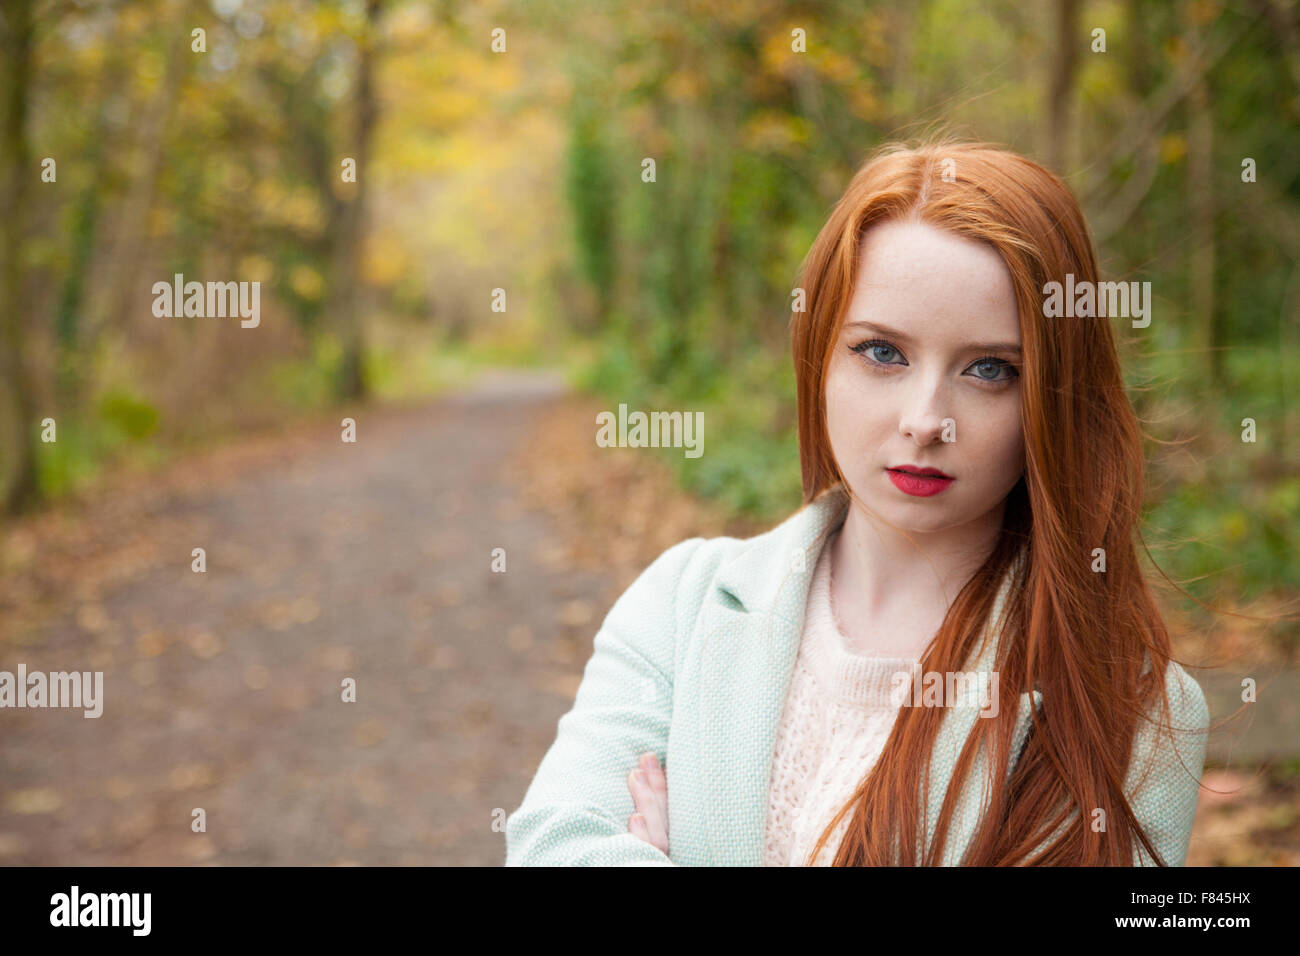 Redheaded woman outside with a forest path in the background. - Stock Image